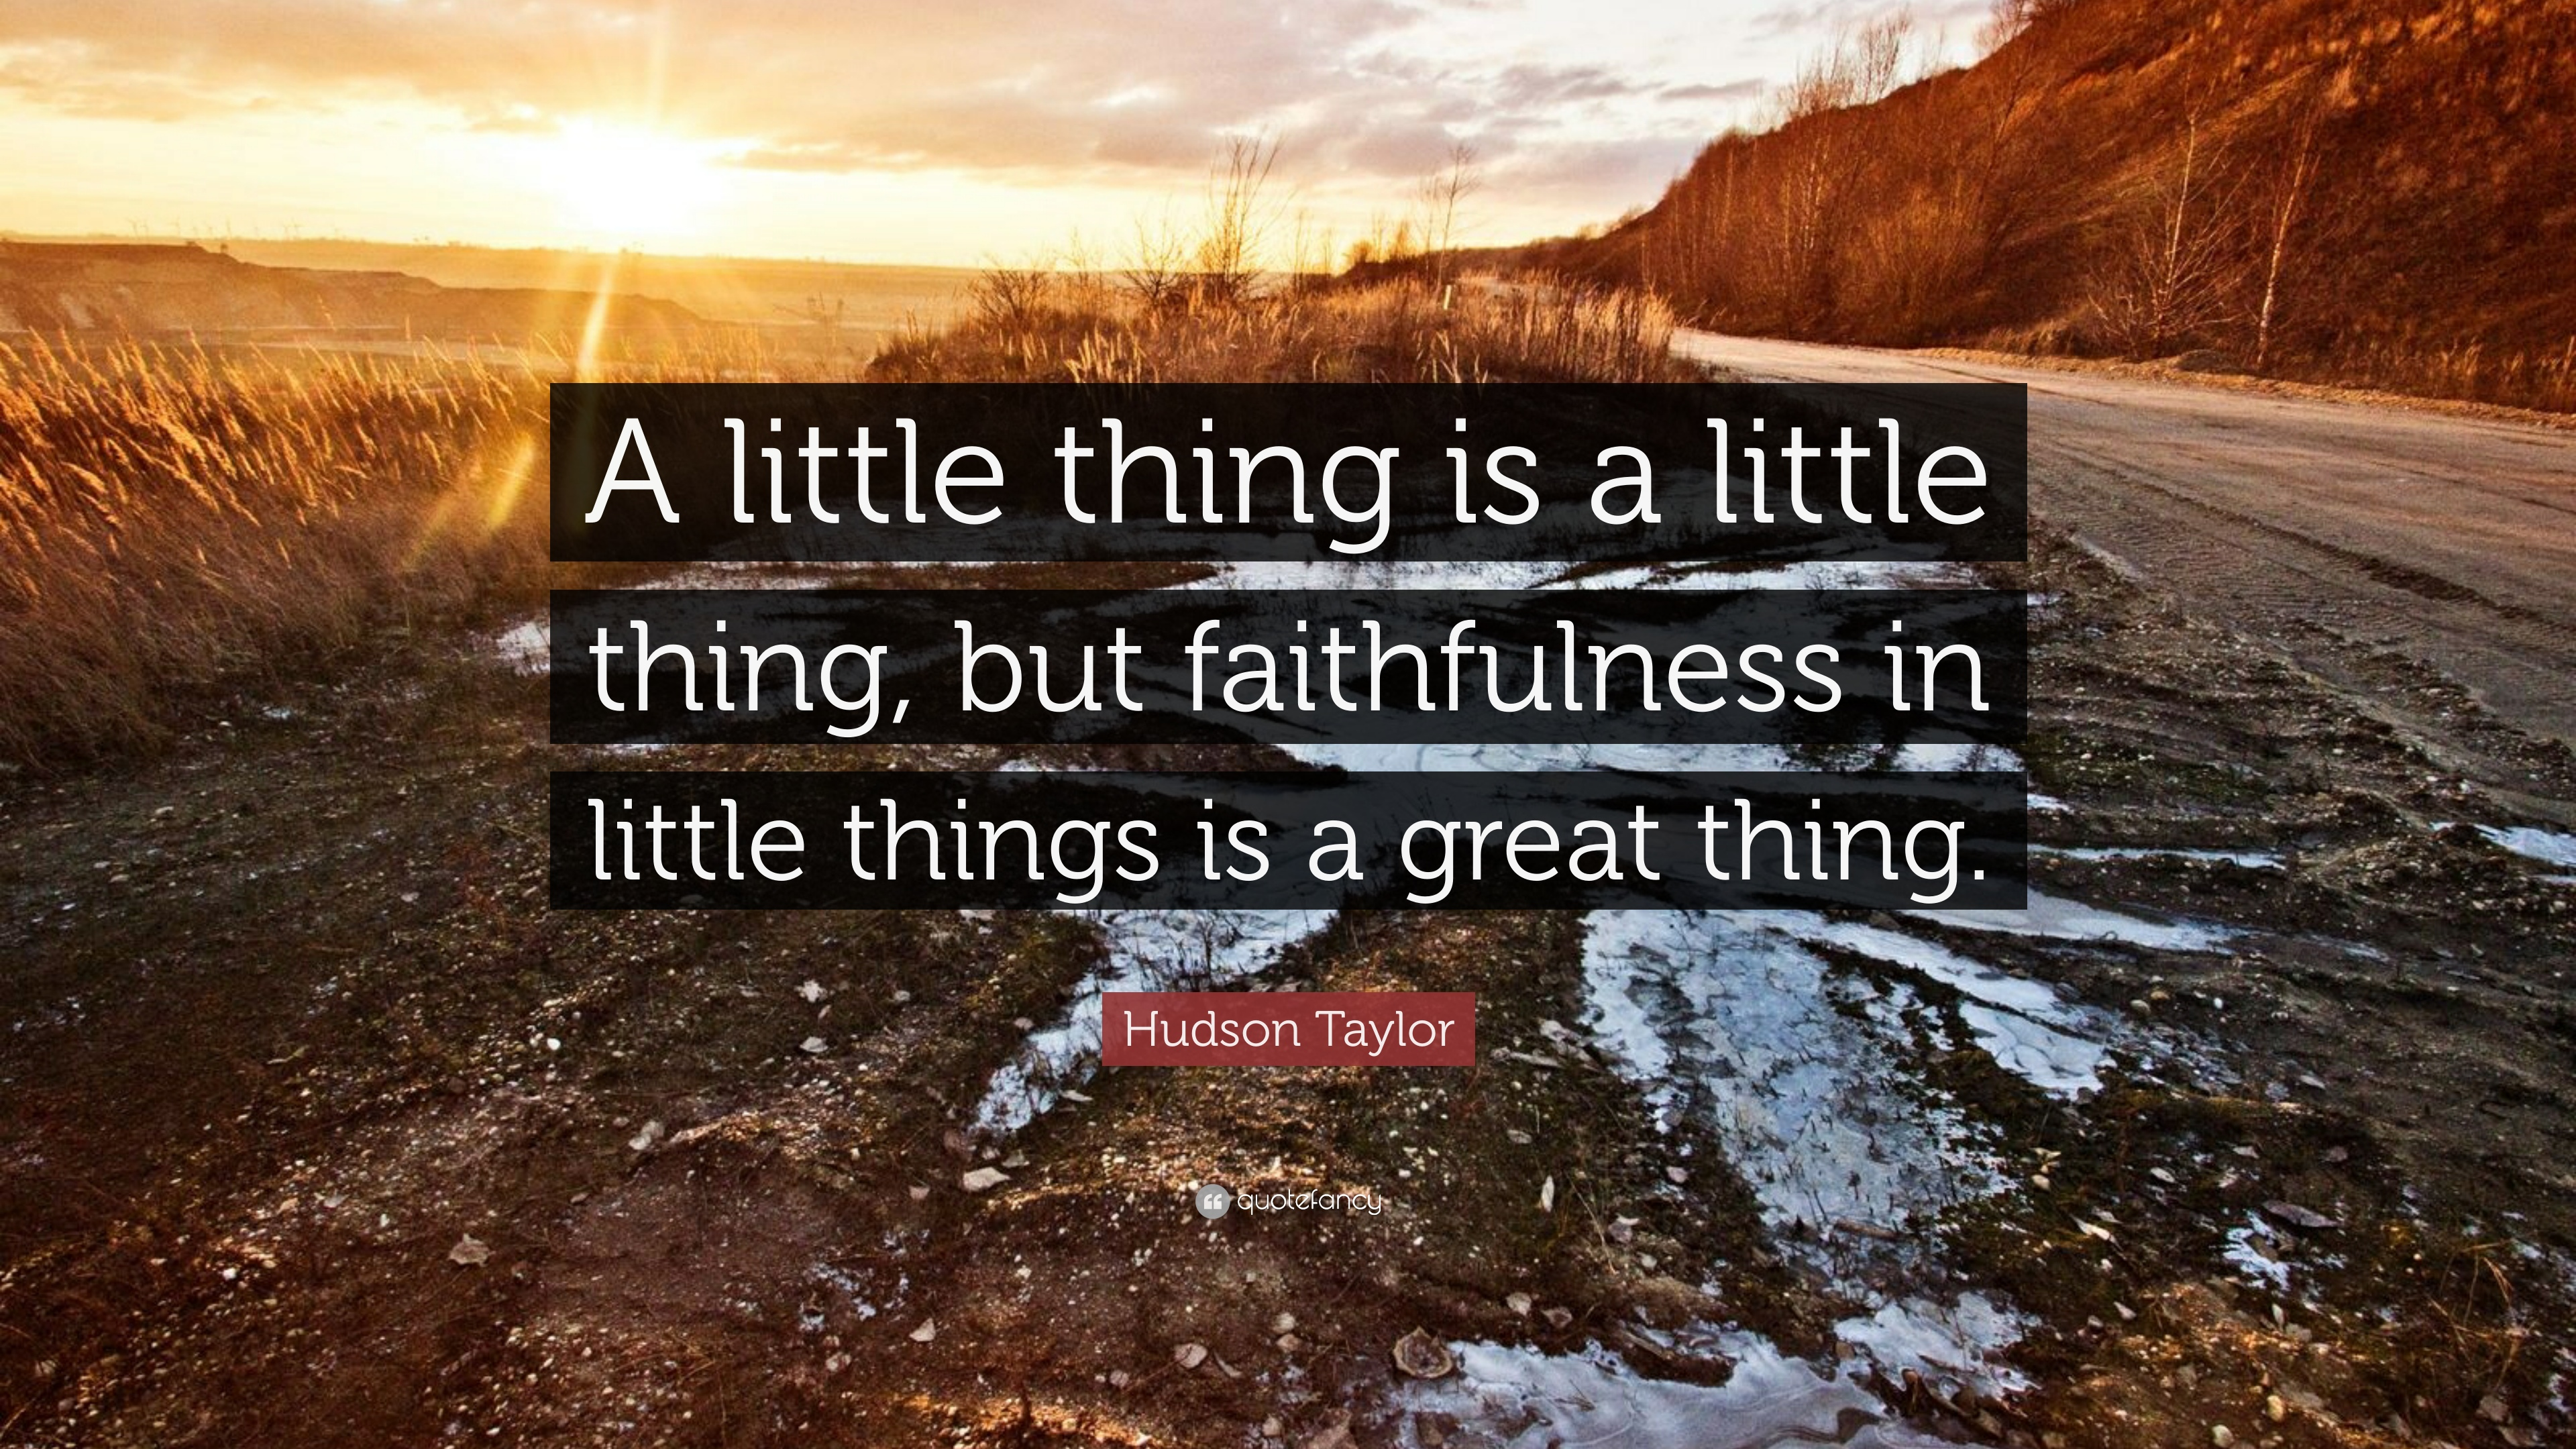 1149446-James-Hudson-Taylor-Quote-A-little-thing-is-a-little-thing-but